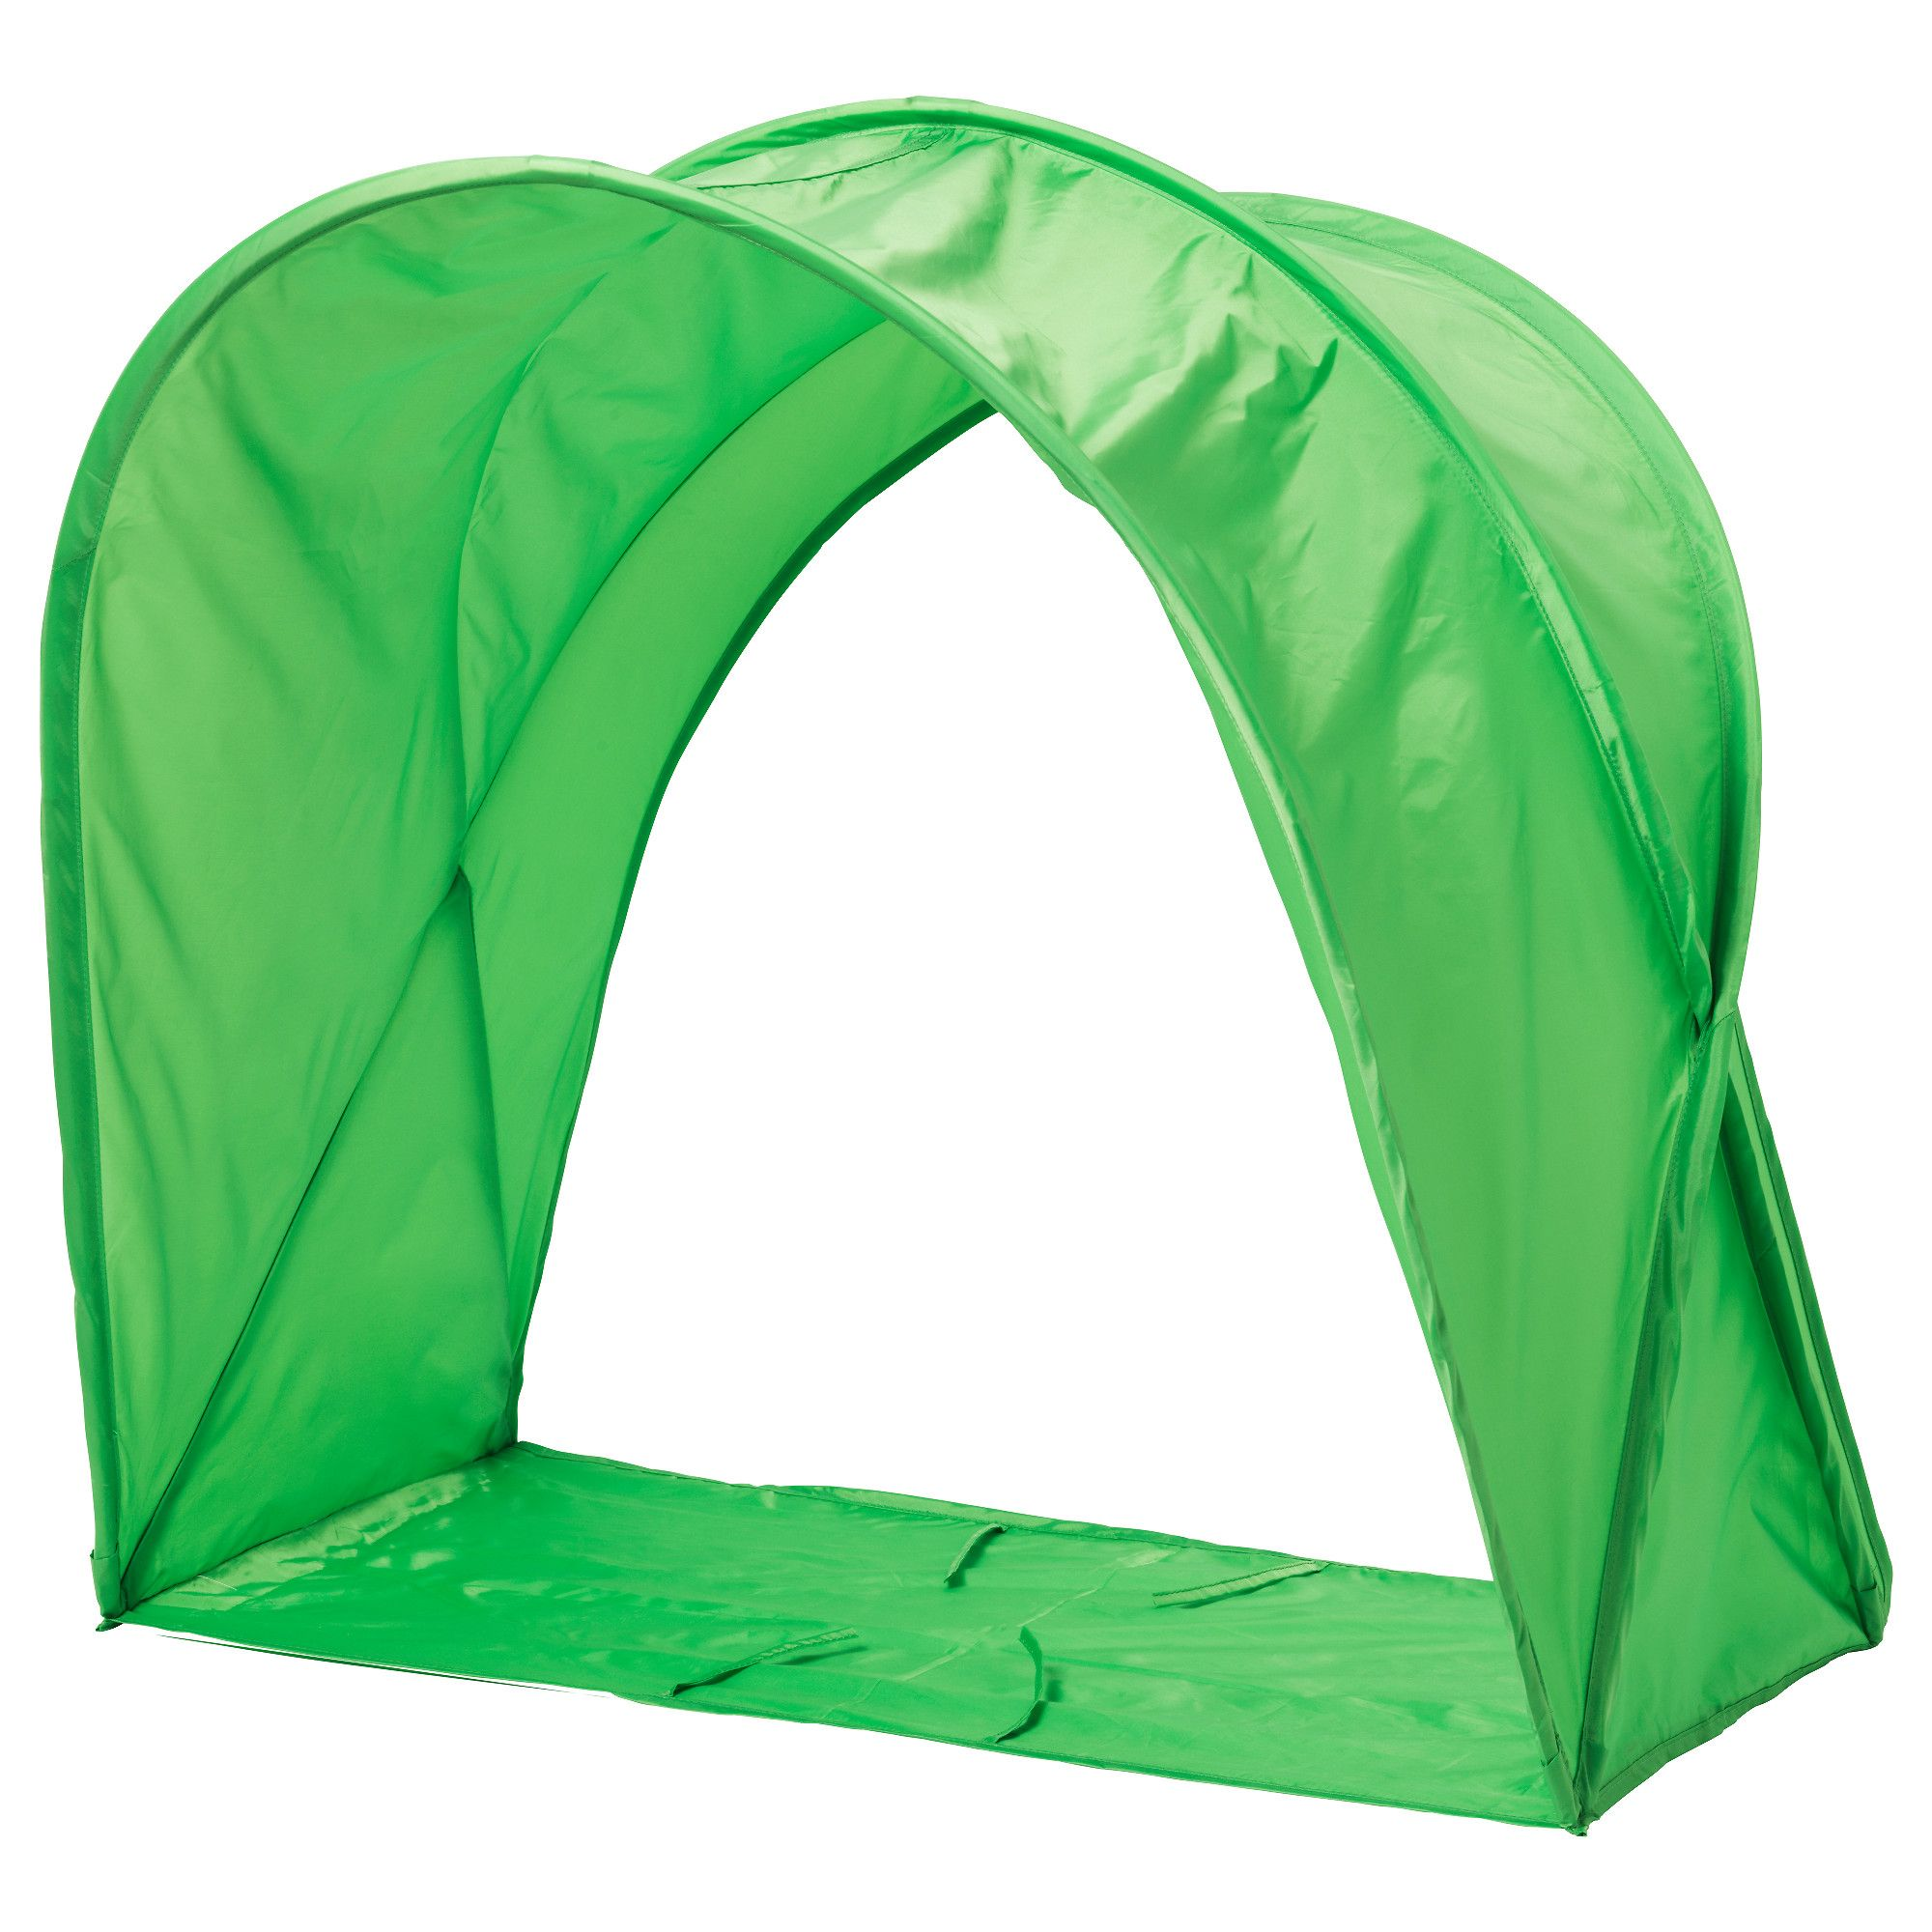 Sufflett Bed Tent Green 70 80 90 Bed Tent Ikea Bed Bed Tent Ikea